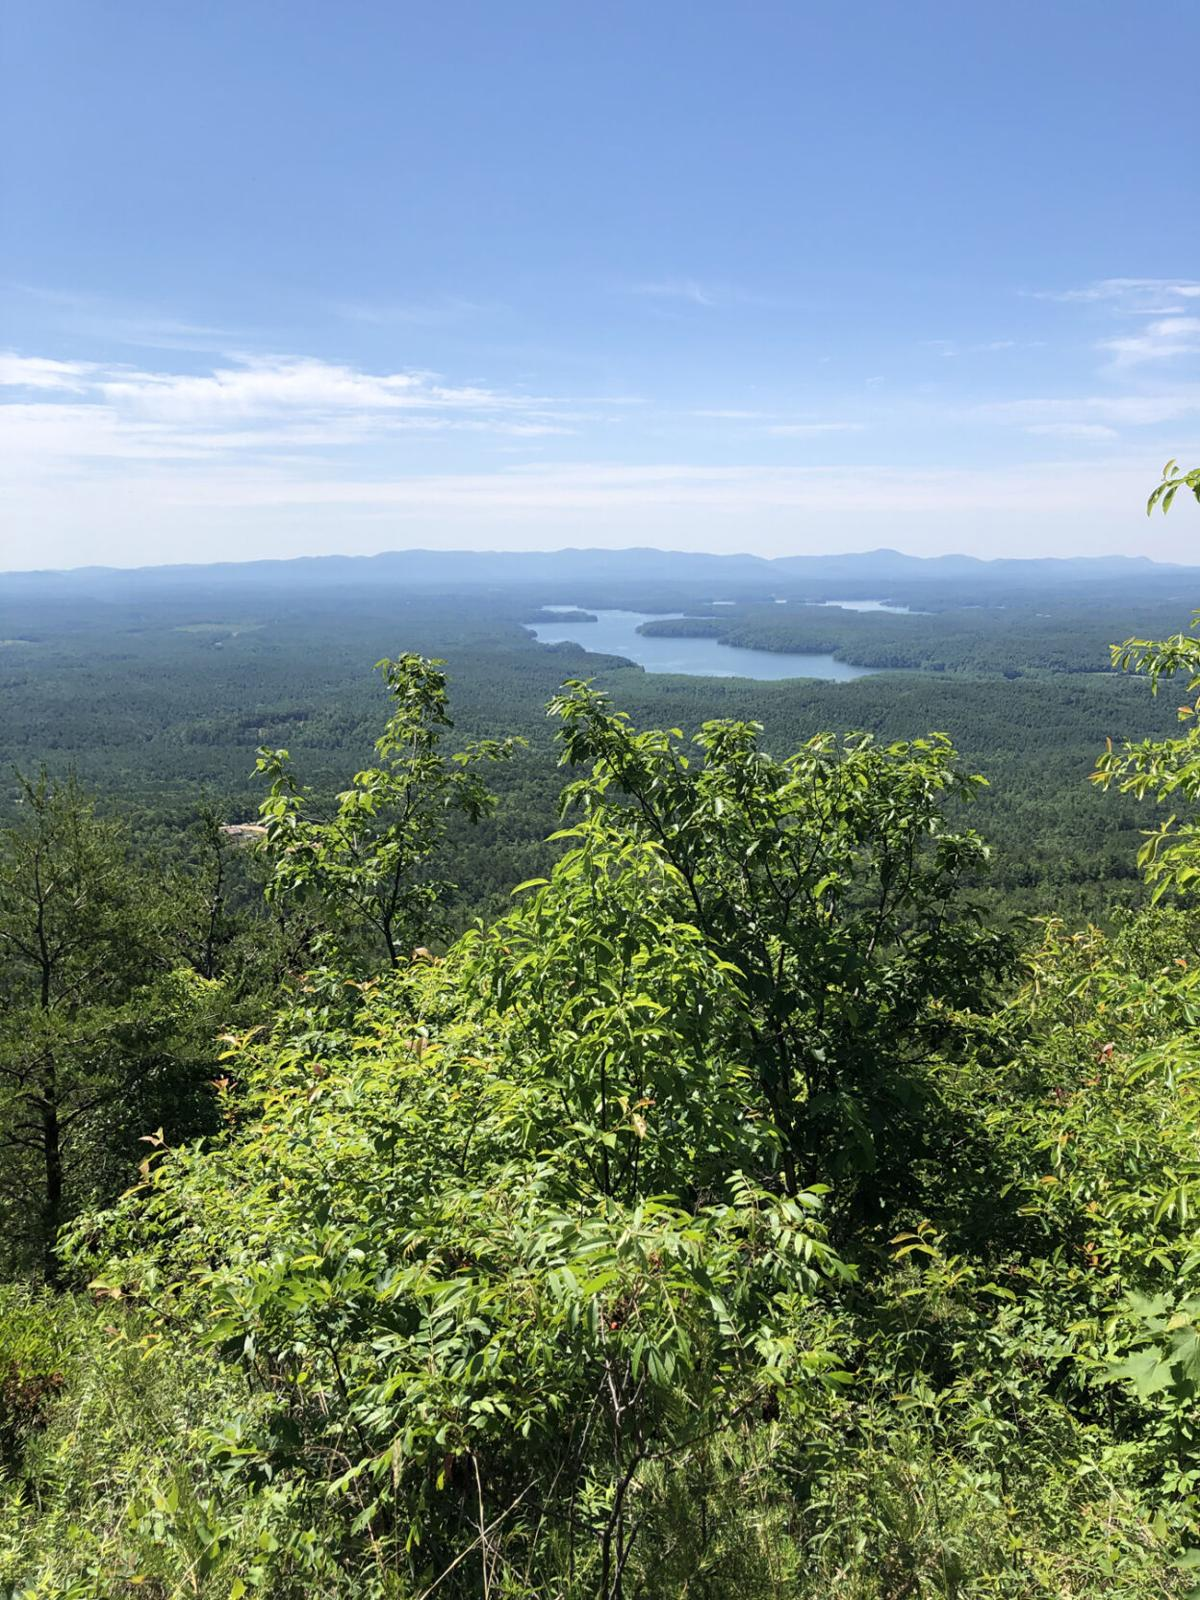 WNC Afield: A rough and rocky road, but well worth the climb